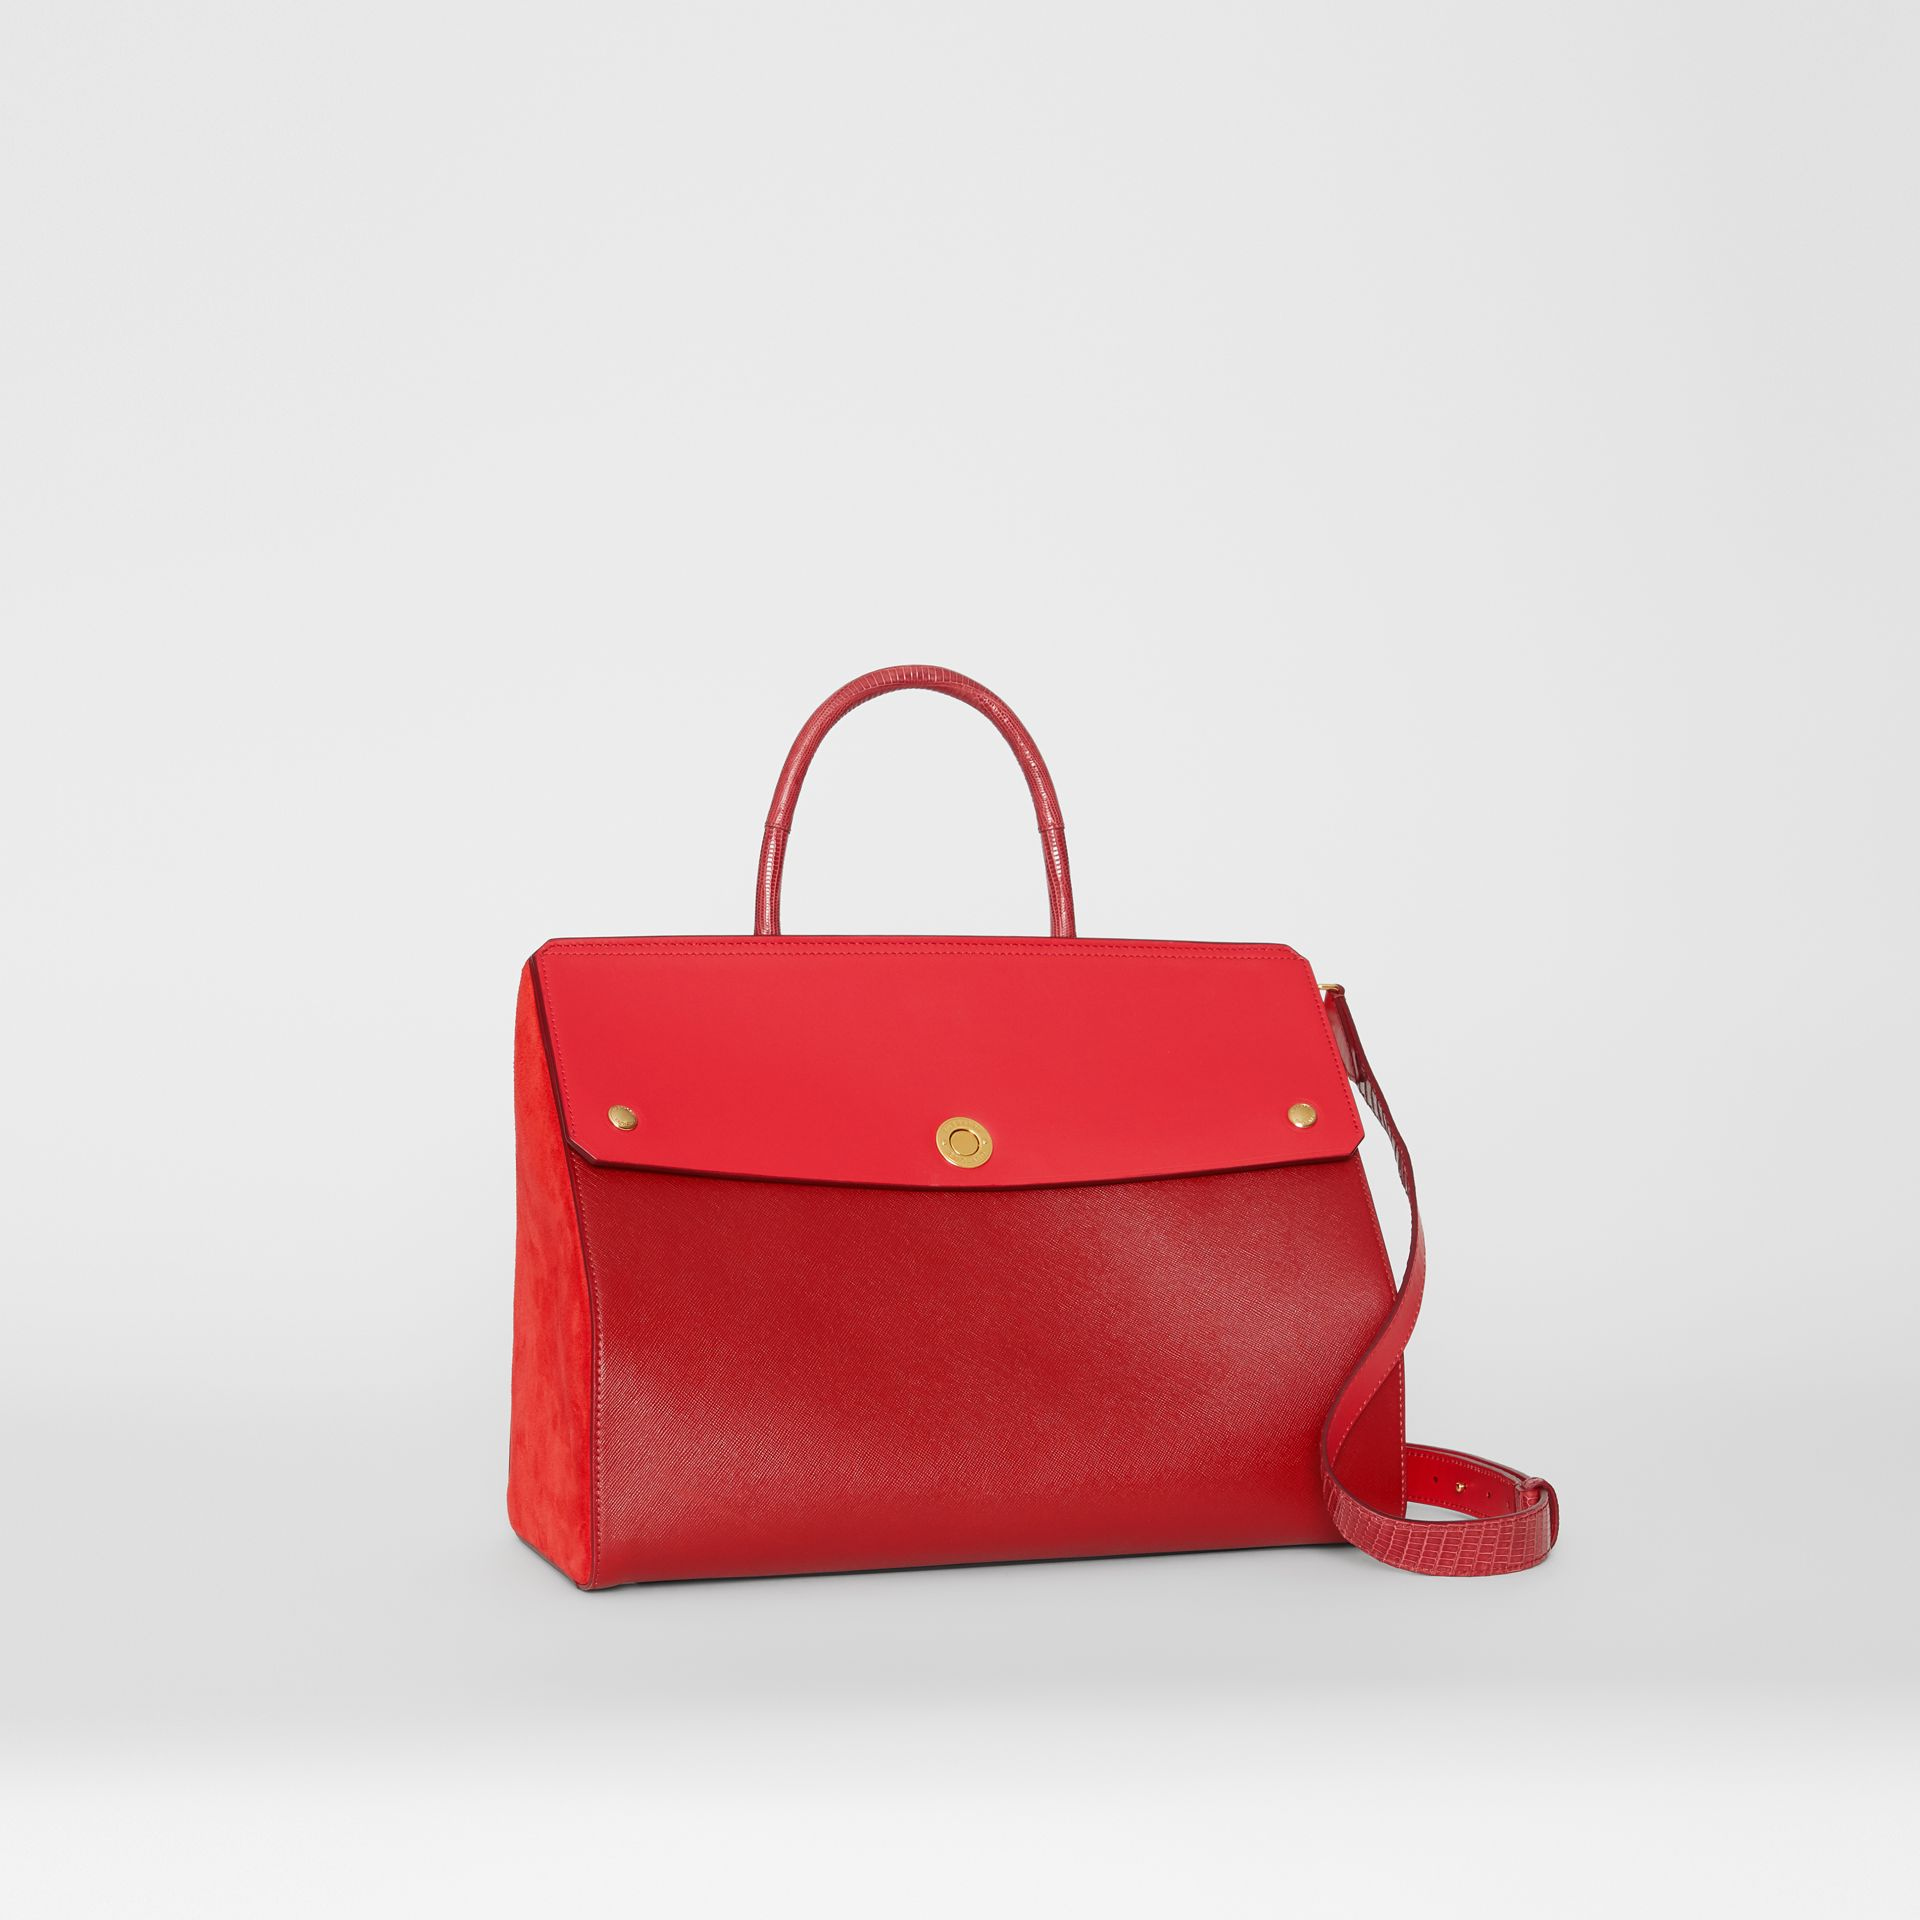 Small Leather and Suede Elizabeth Bag in Bright Military Red - Women | Burberry - gallery image 6